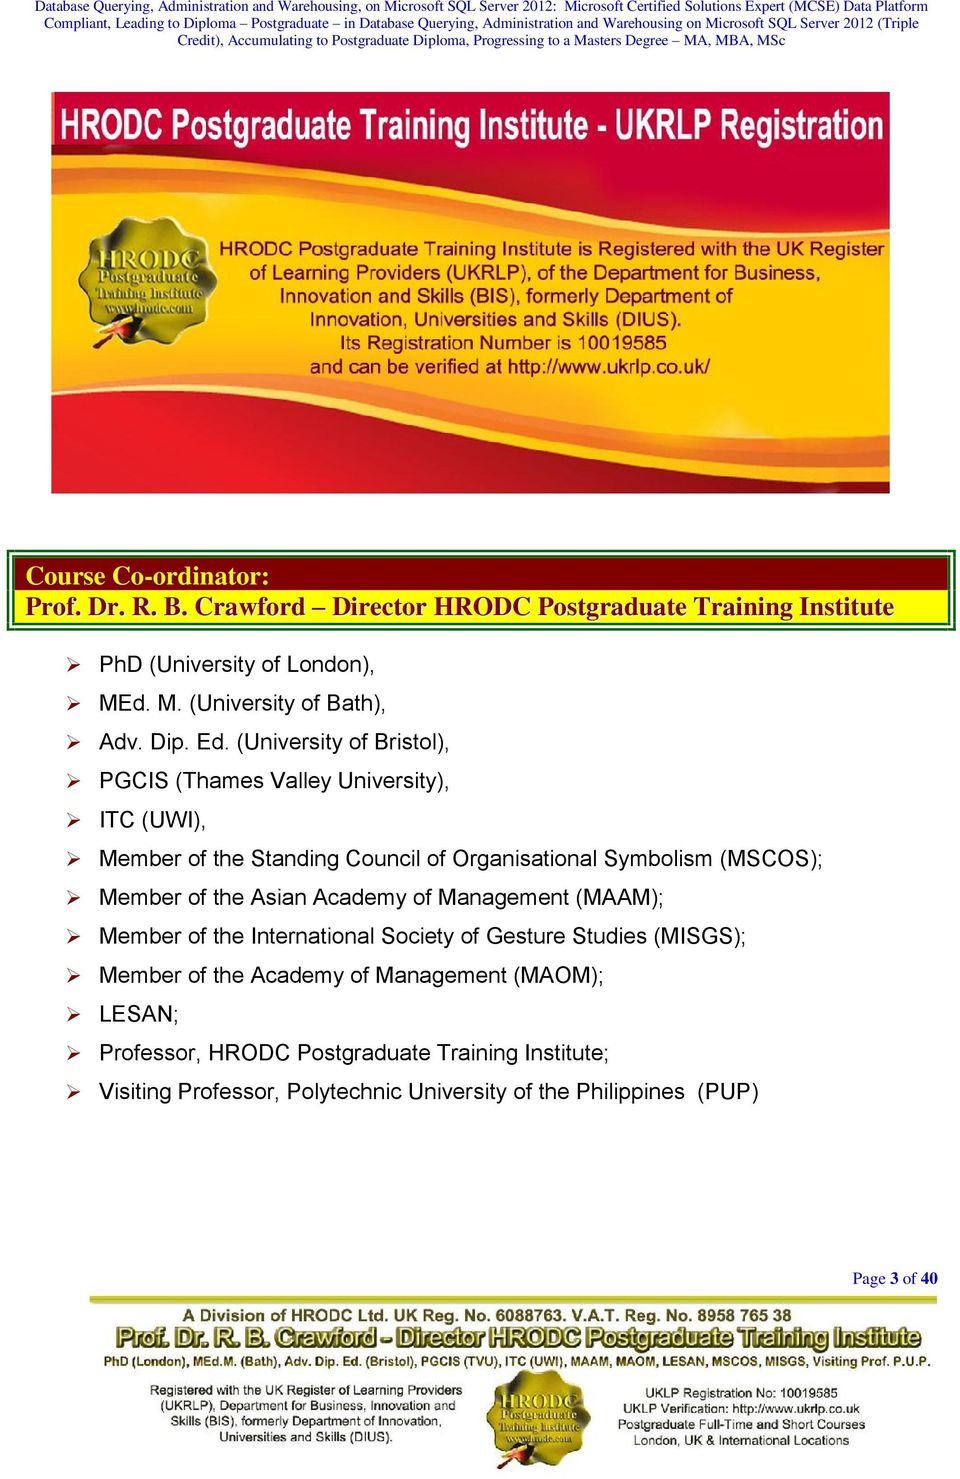 (University of Bristol), PGCIS (Thames Valley University), ITC (UWI), Member of the Standing Council of Organisational Symbolism (MSCOS); Member of